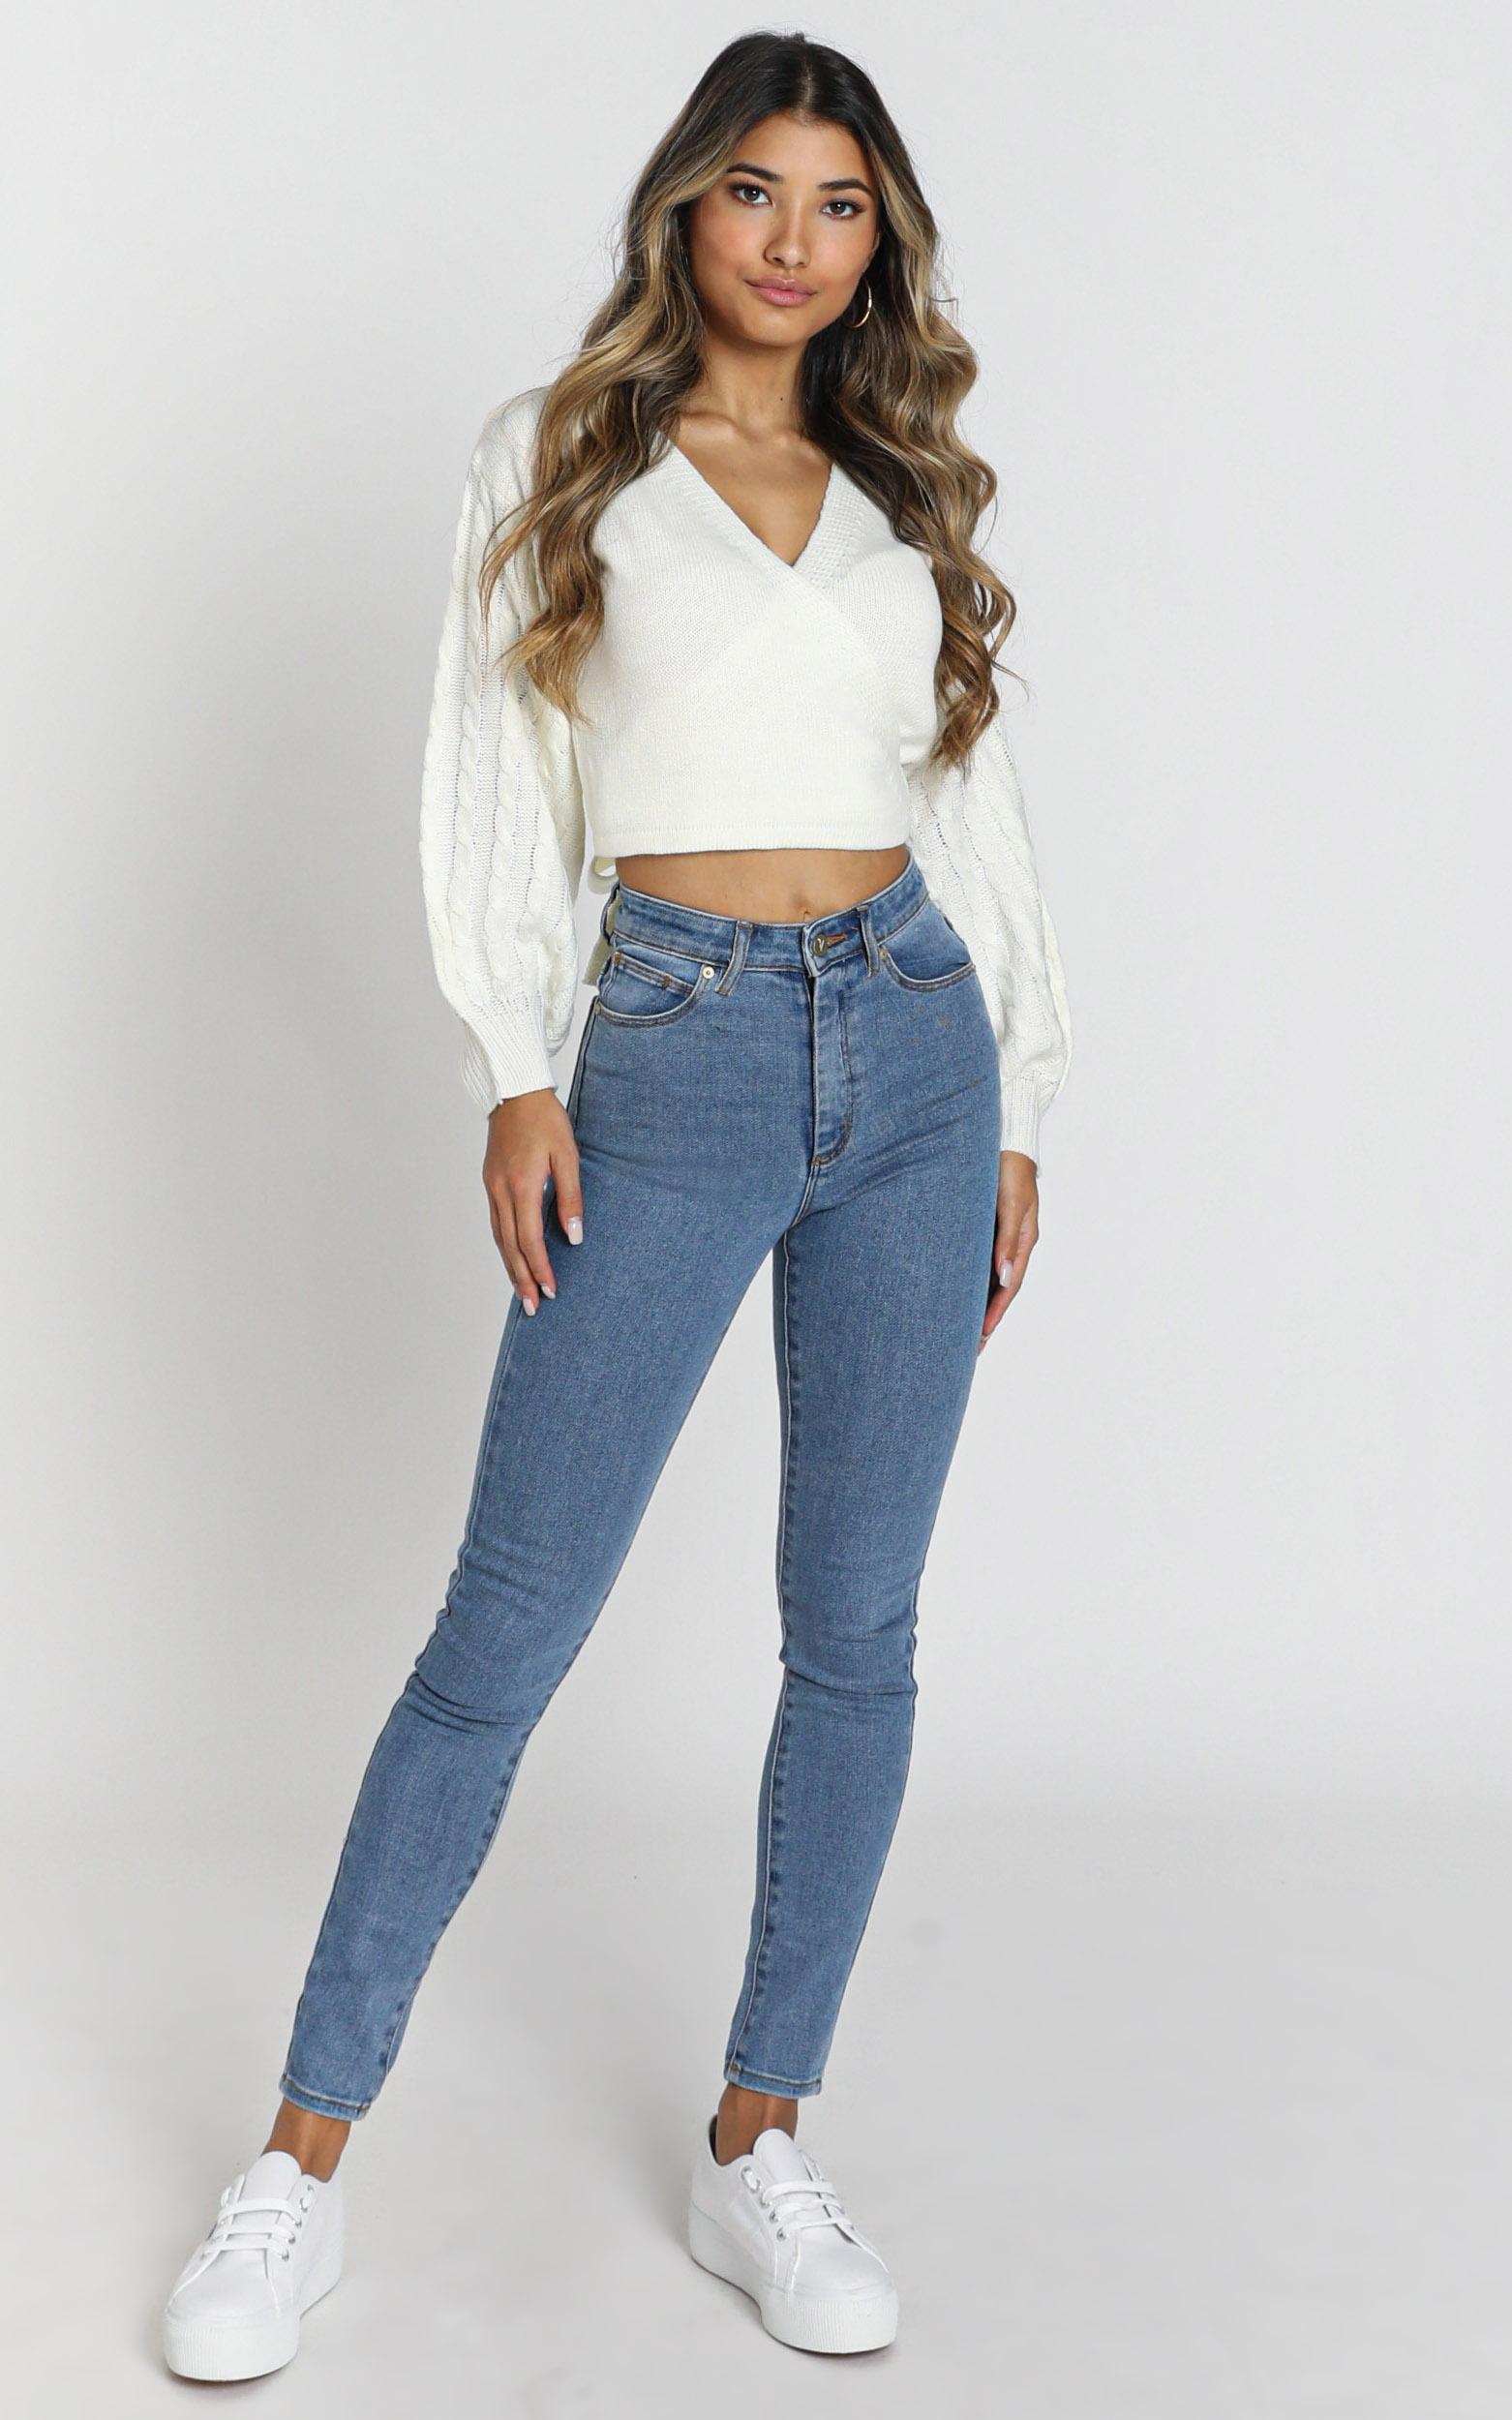 Abrand - A High Skinny Ankle Basher Jeans in la blues - 14 (XL), Blue, hi-res image number null